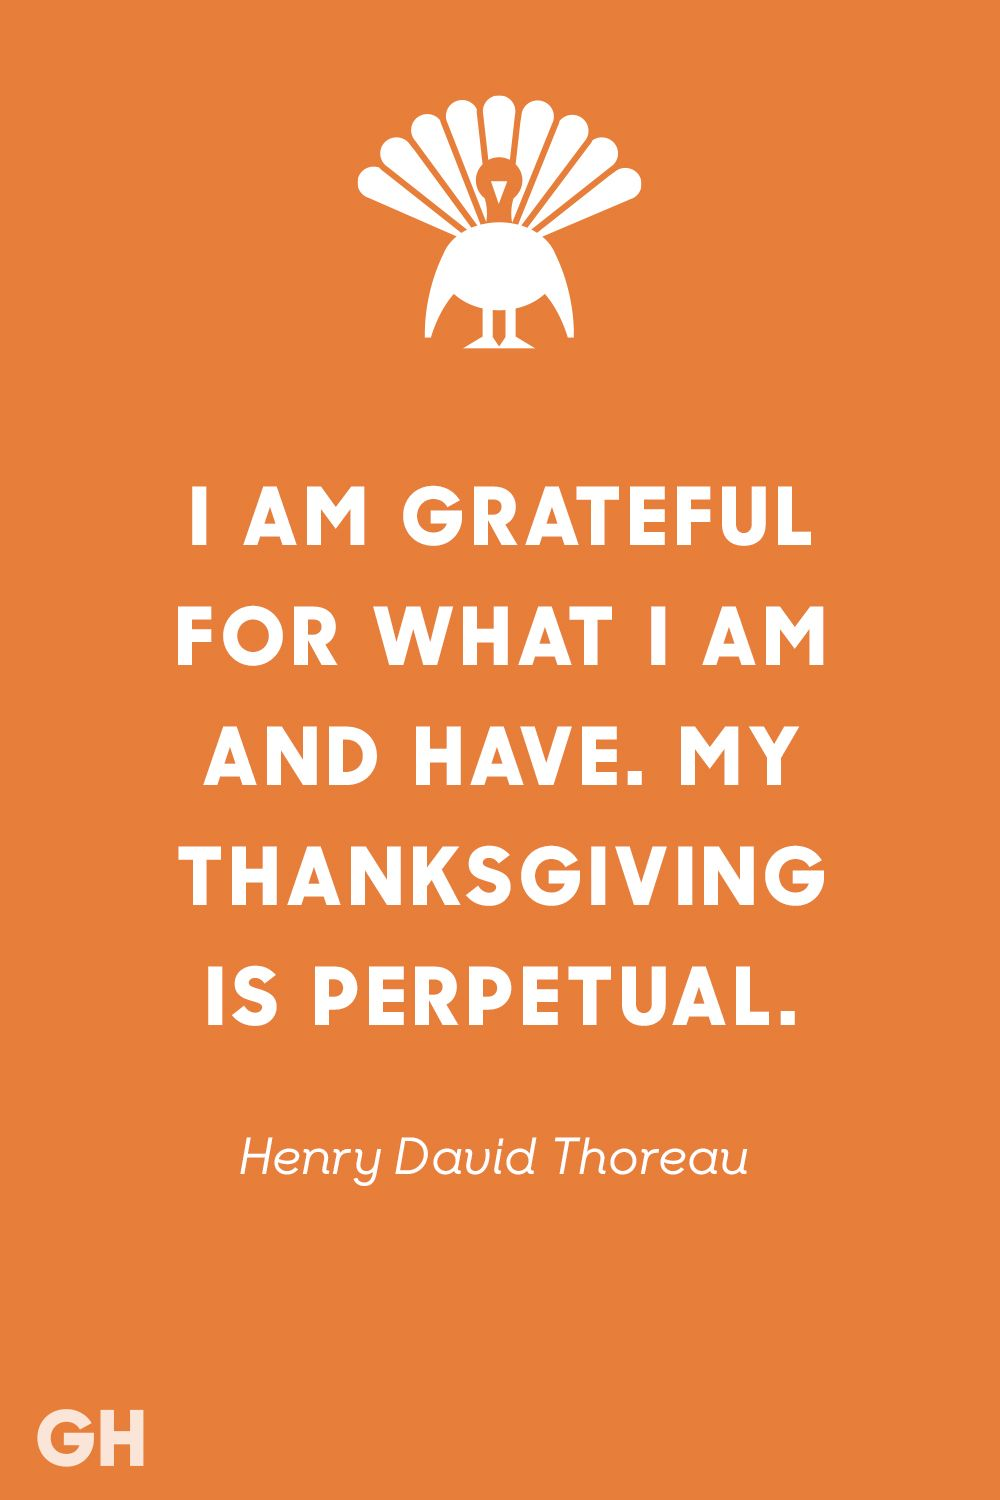 22 Best Thanksgiving Quotes To Share At Your Table Quotes